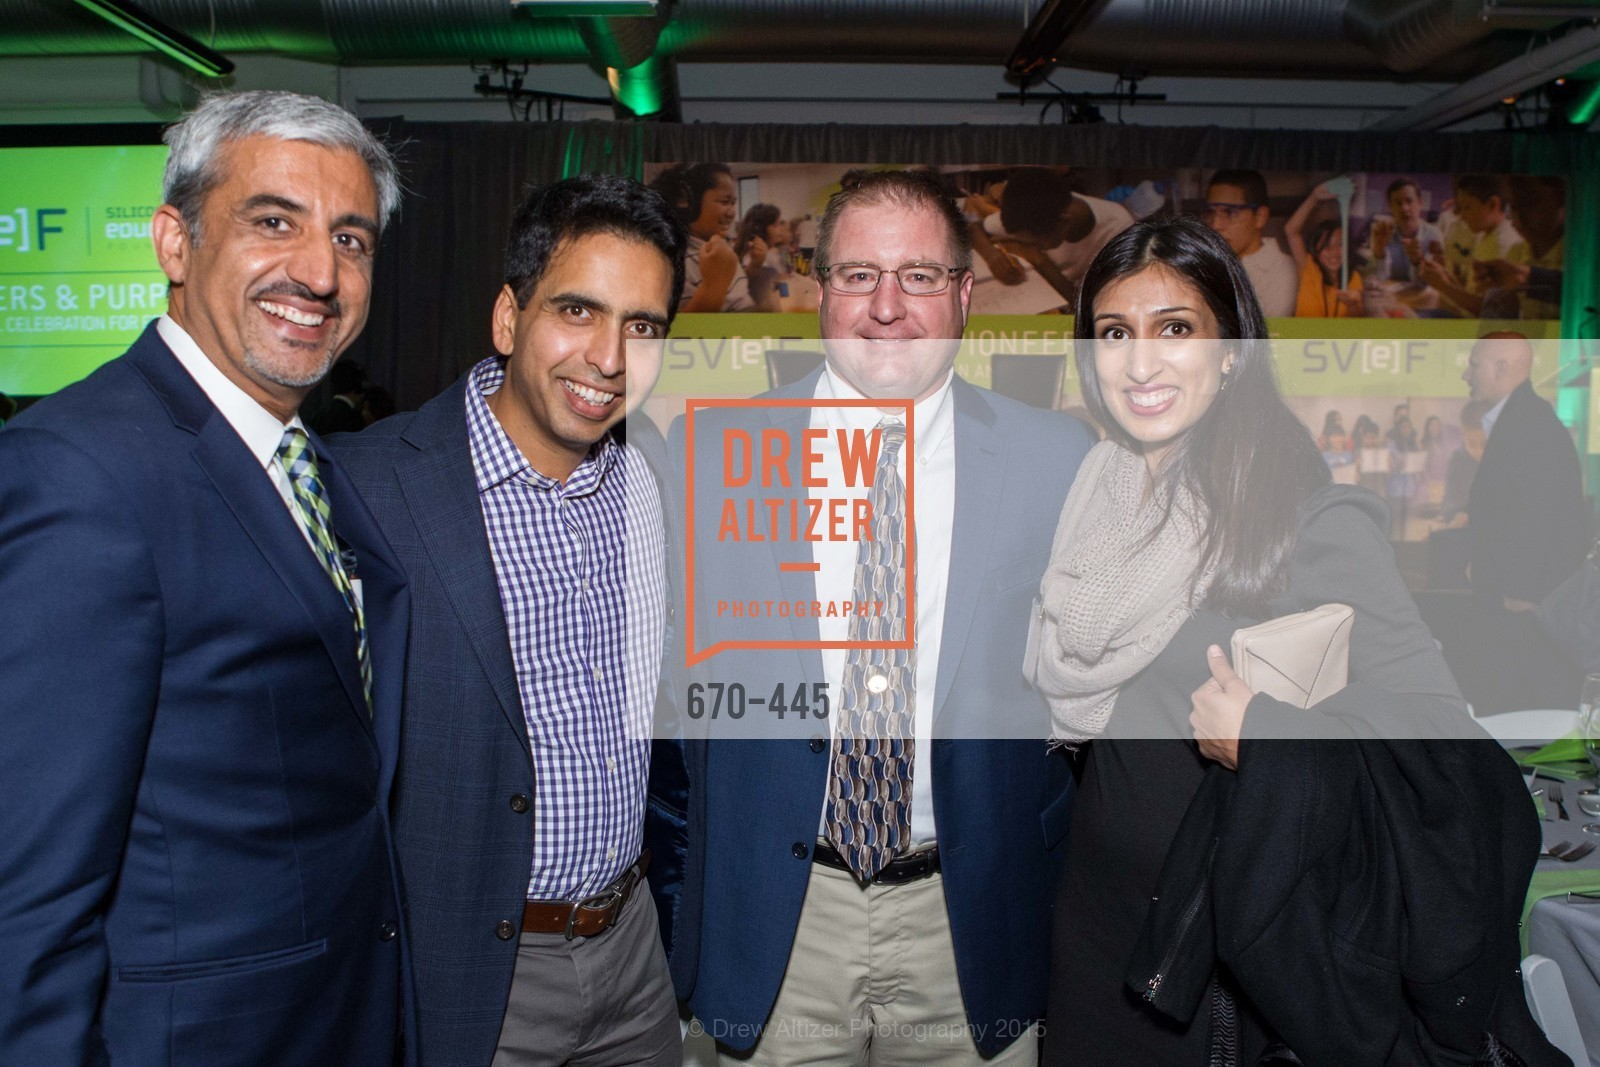 Muhammed Chaudhry, Salman Khan, David Hill, Umaima Marvi, Silicon Valley Education Foundation's PIONEERS & PURPOSE, Computer History Museum. 1401 N. Shoreline Blvd, November 4th, 2015,Drew Altizer, Drew Altizer Photography, full-service agency, private events, San Francisco photographer, photographer california